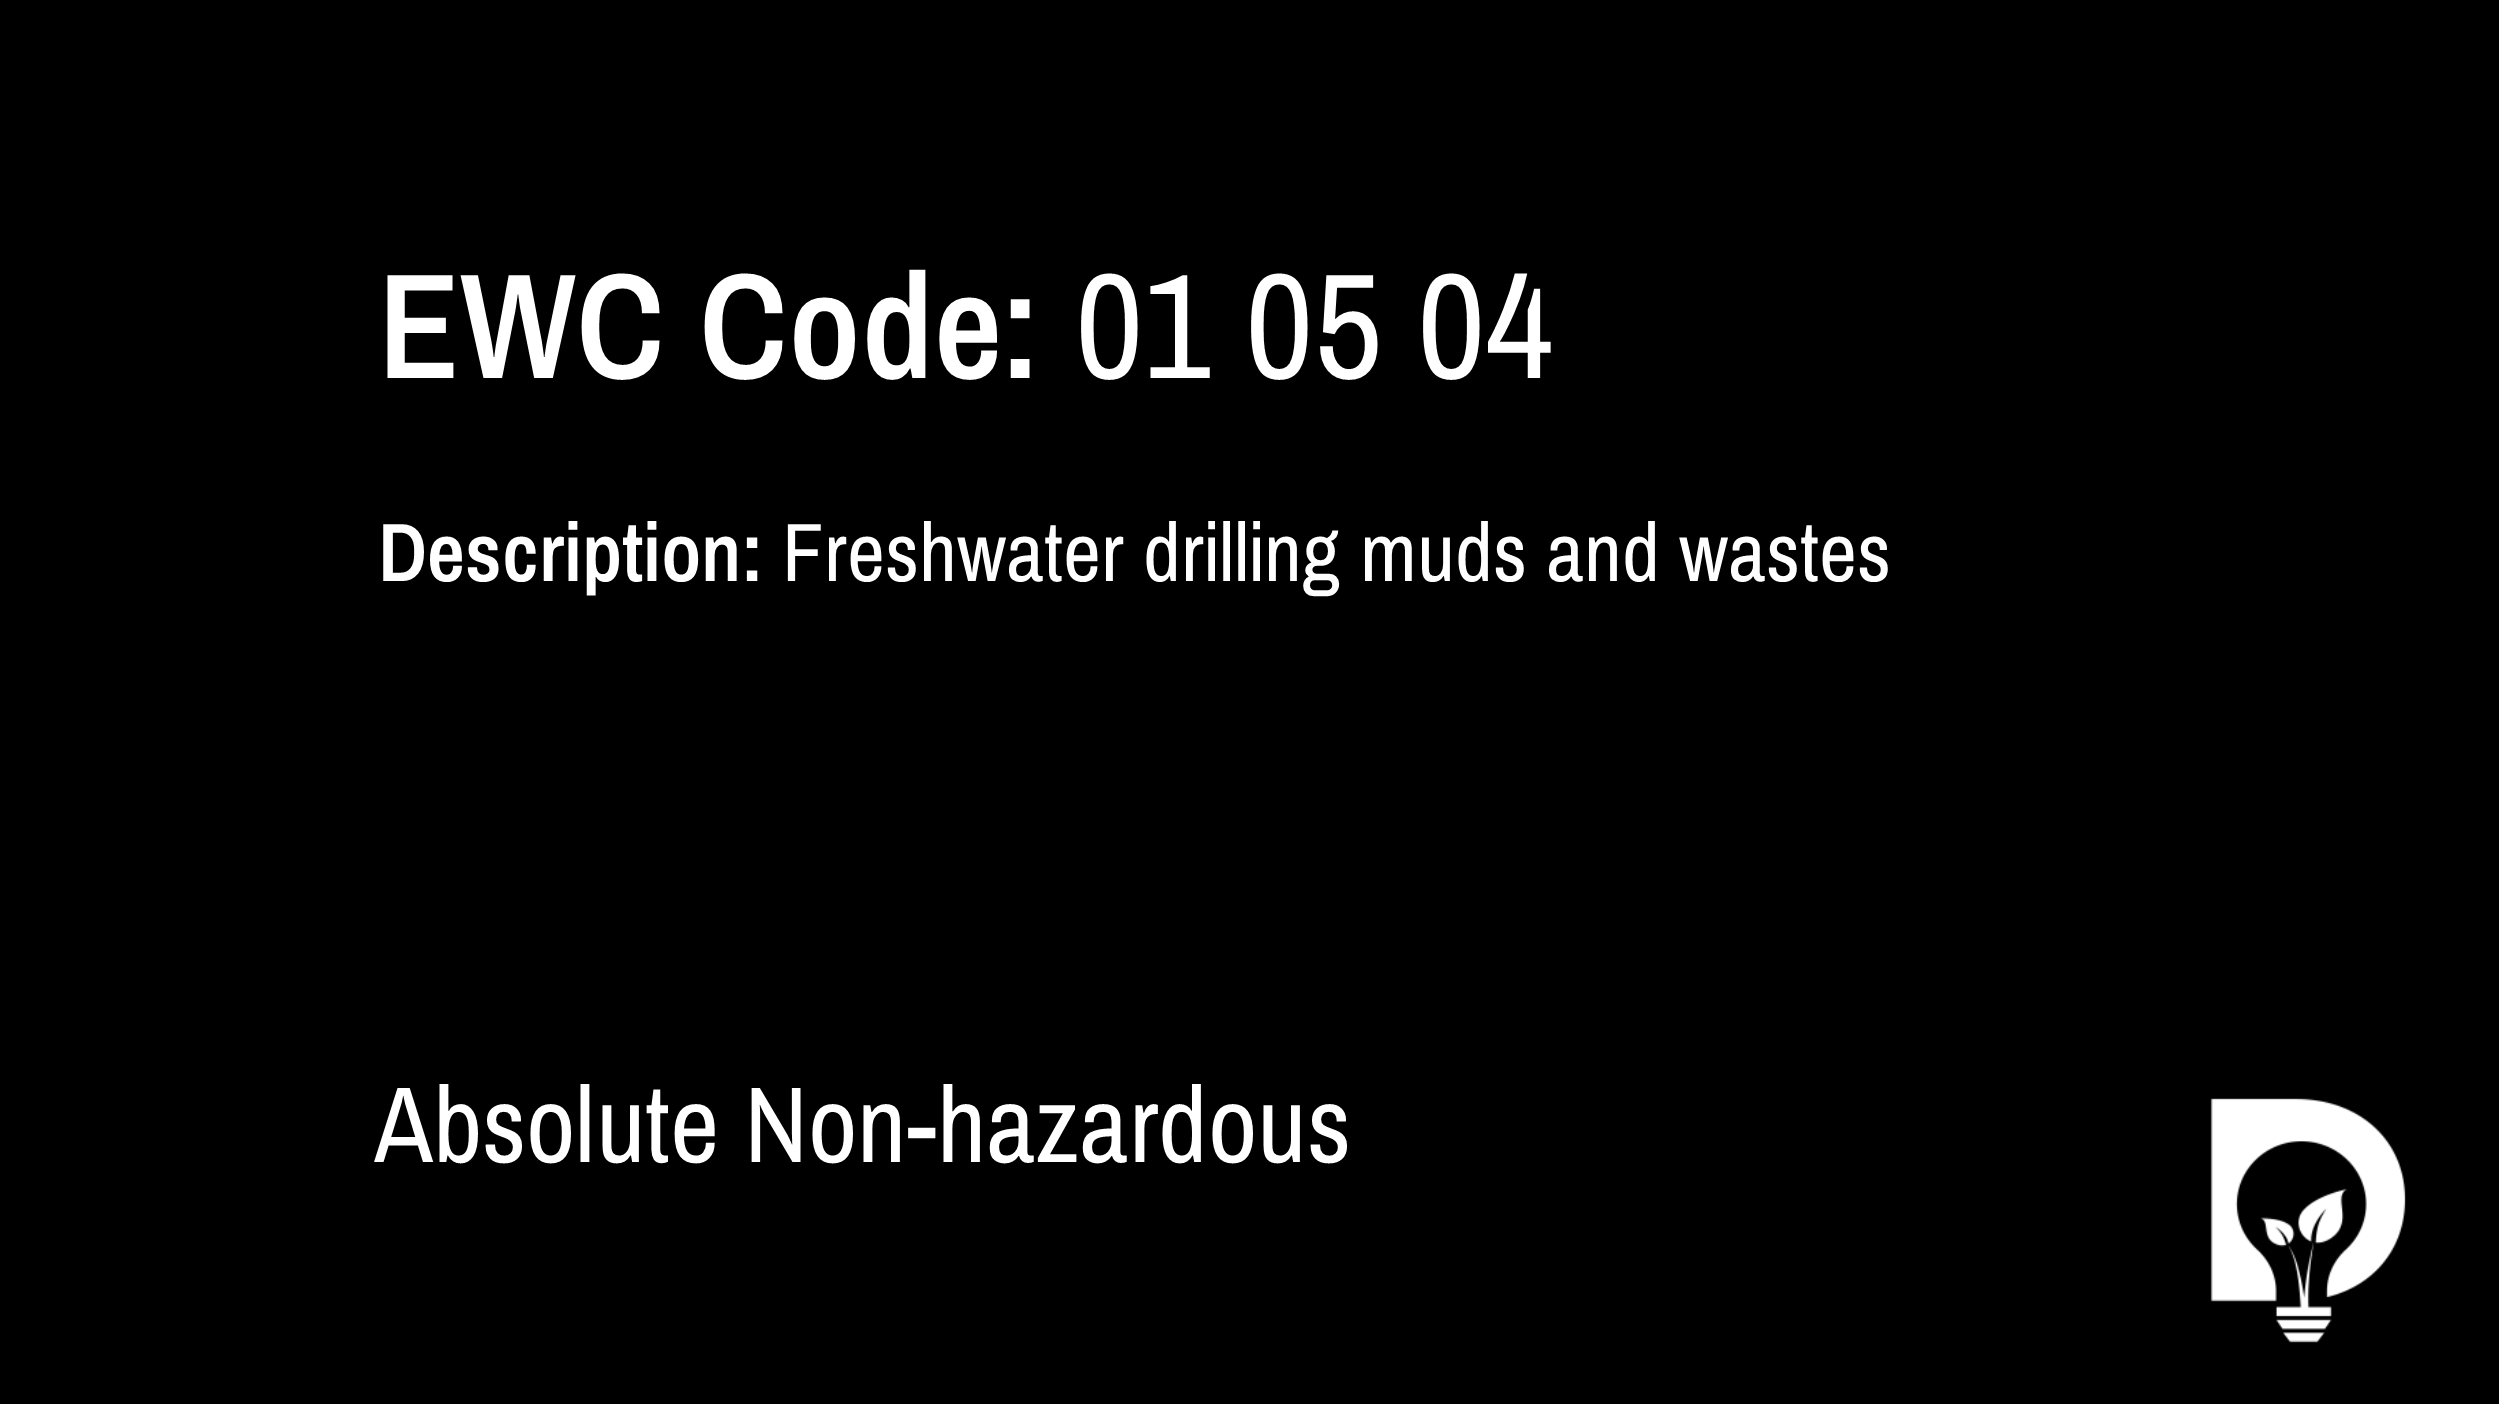 EWC Code: 01 05 04 - freshwater drilling muds and wastes. Type: Absolute Non-hazardous. Image by Dsposal